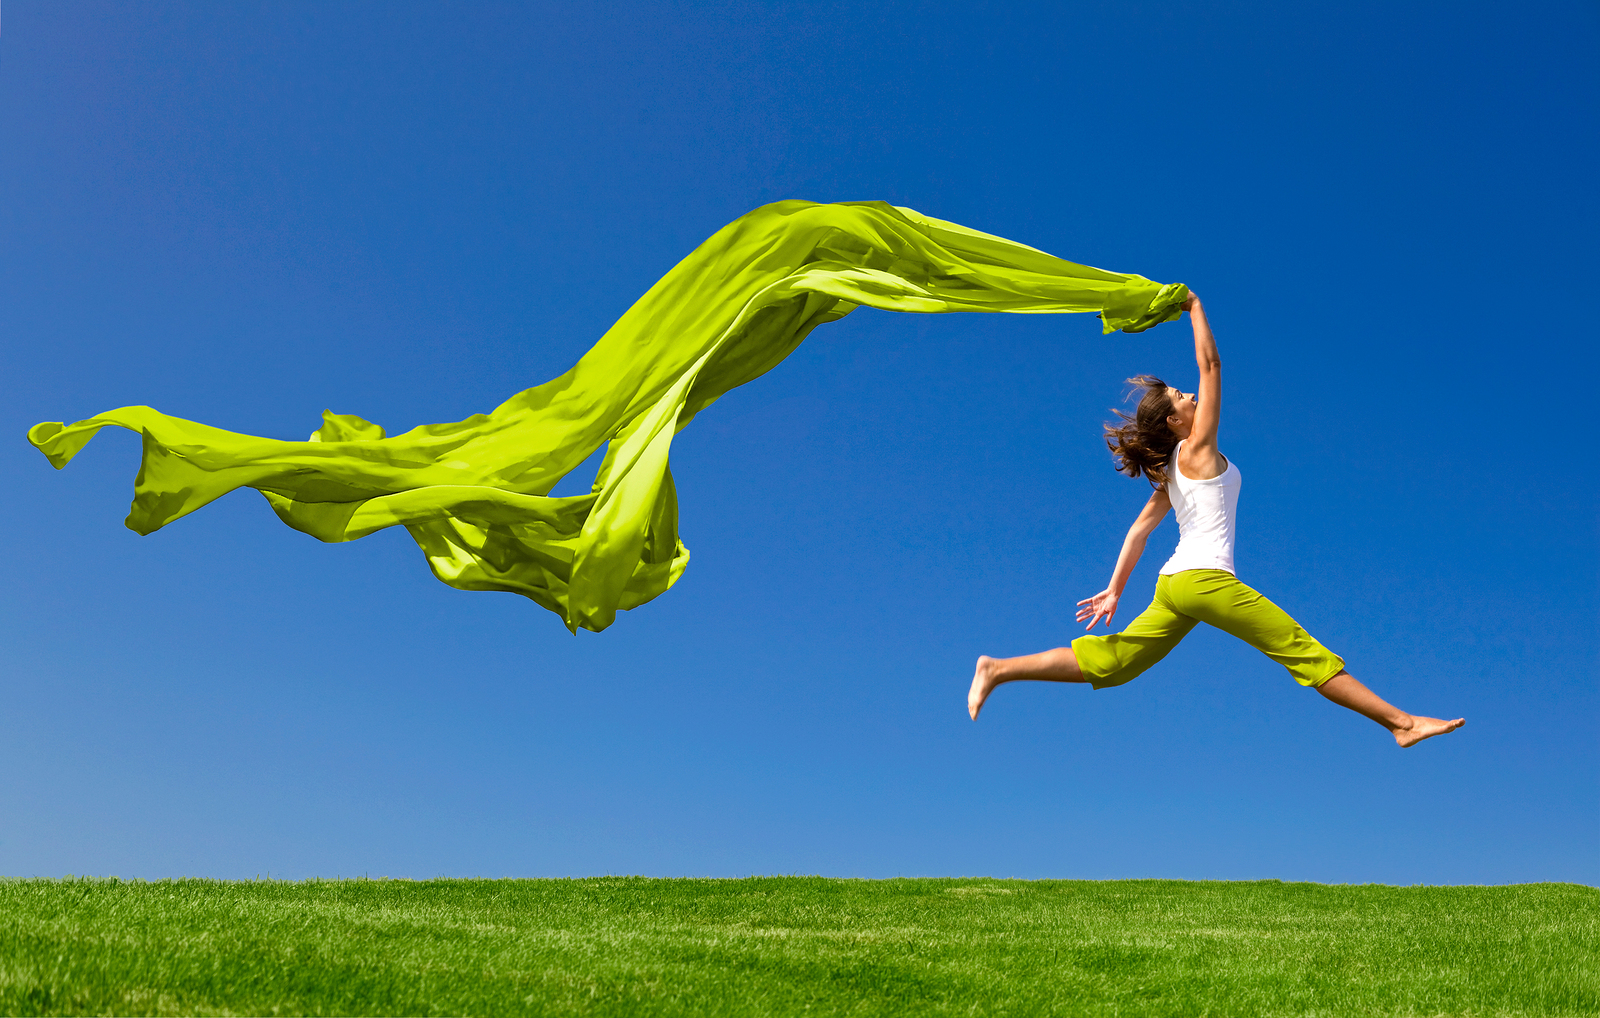 Women Jumping in Sunny Grass